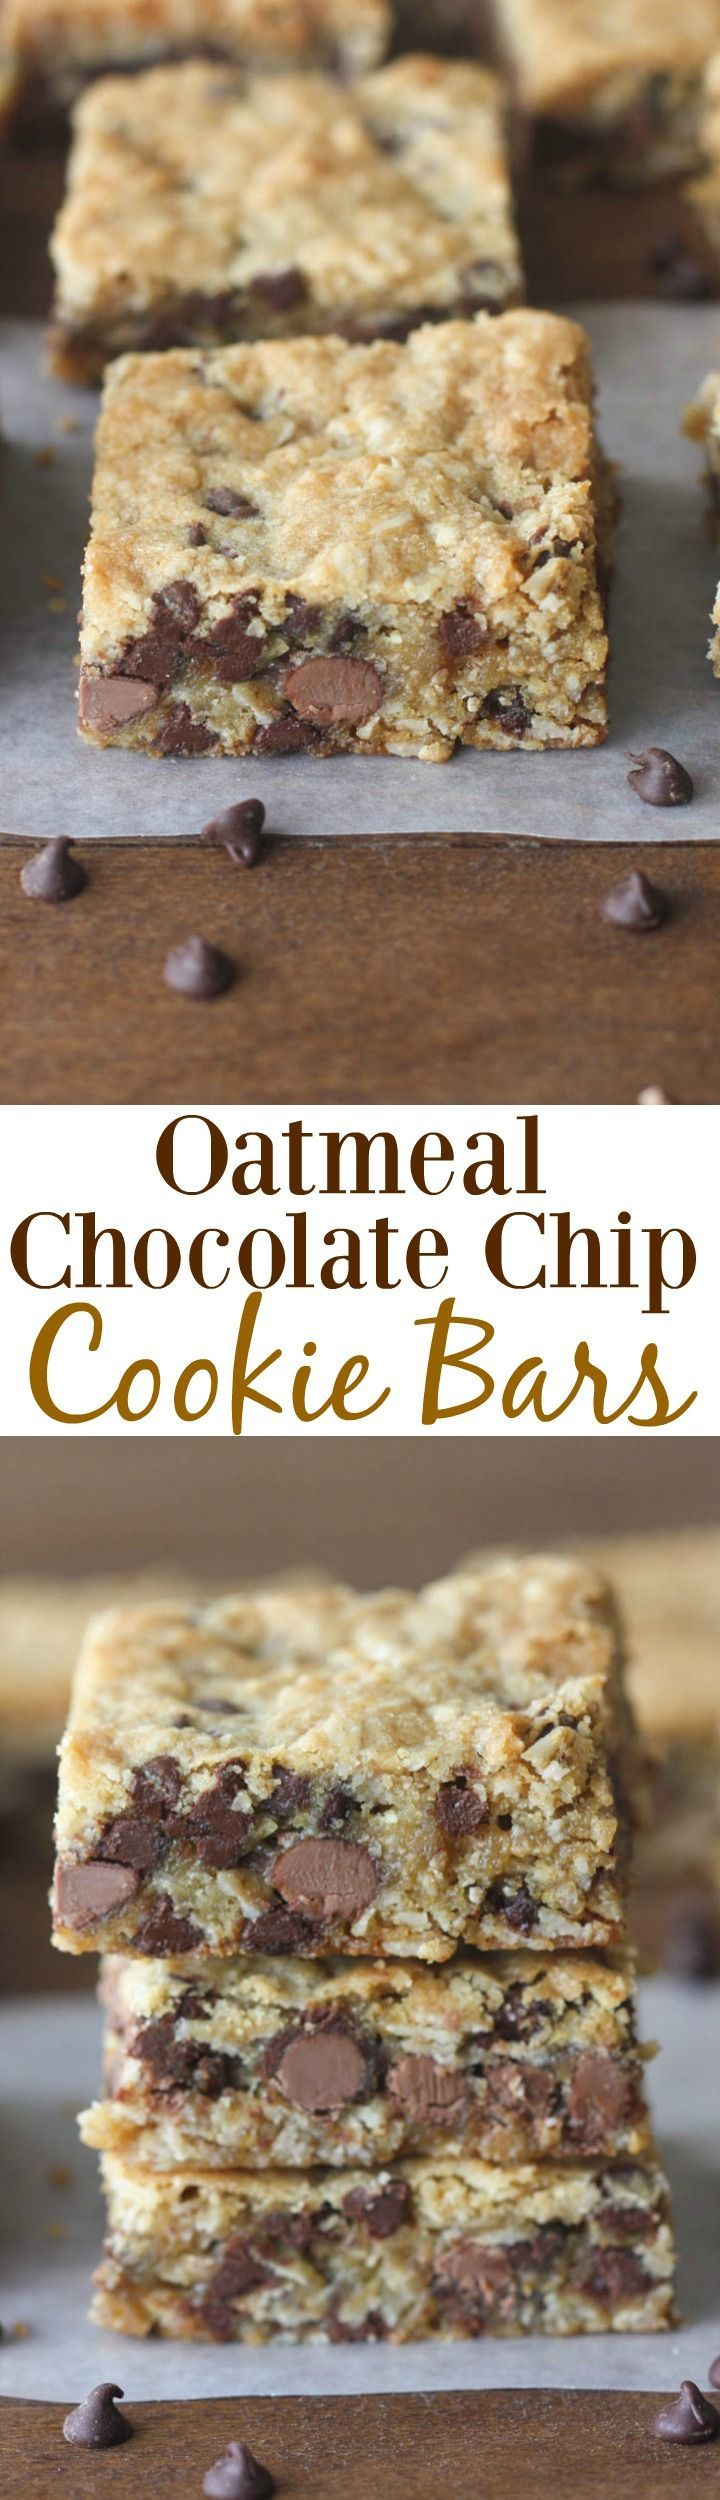 Oatmeal Chocolate Chip Cookie Bars - thick and chewy cookie bars with oats and chocolate. A family favorite!